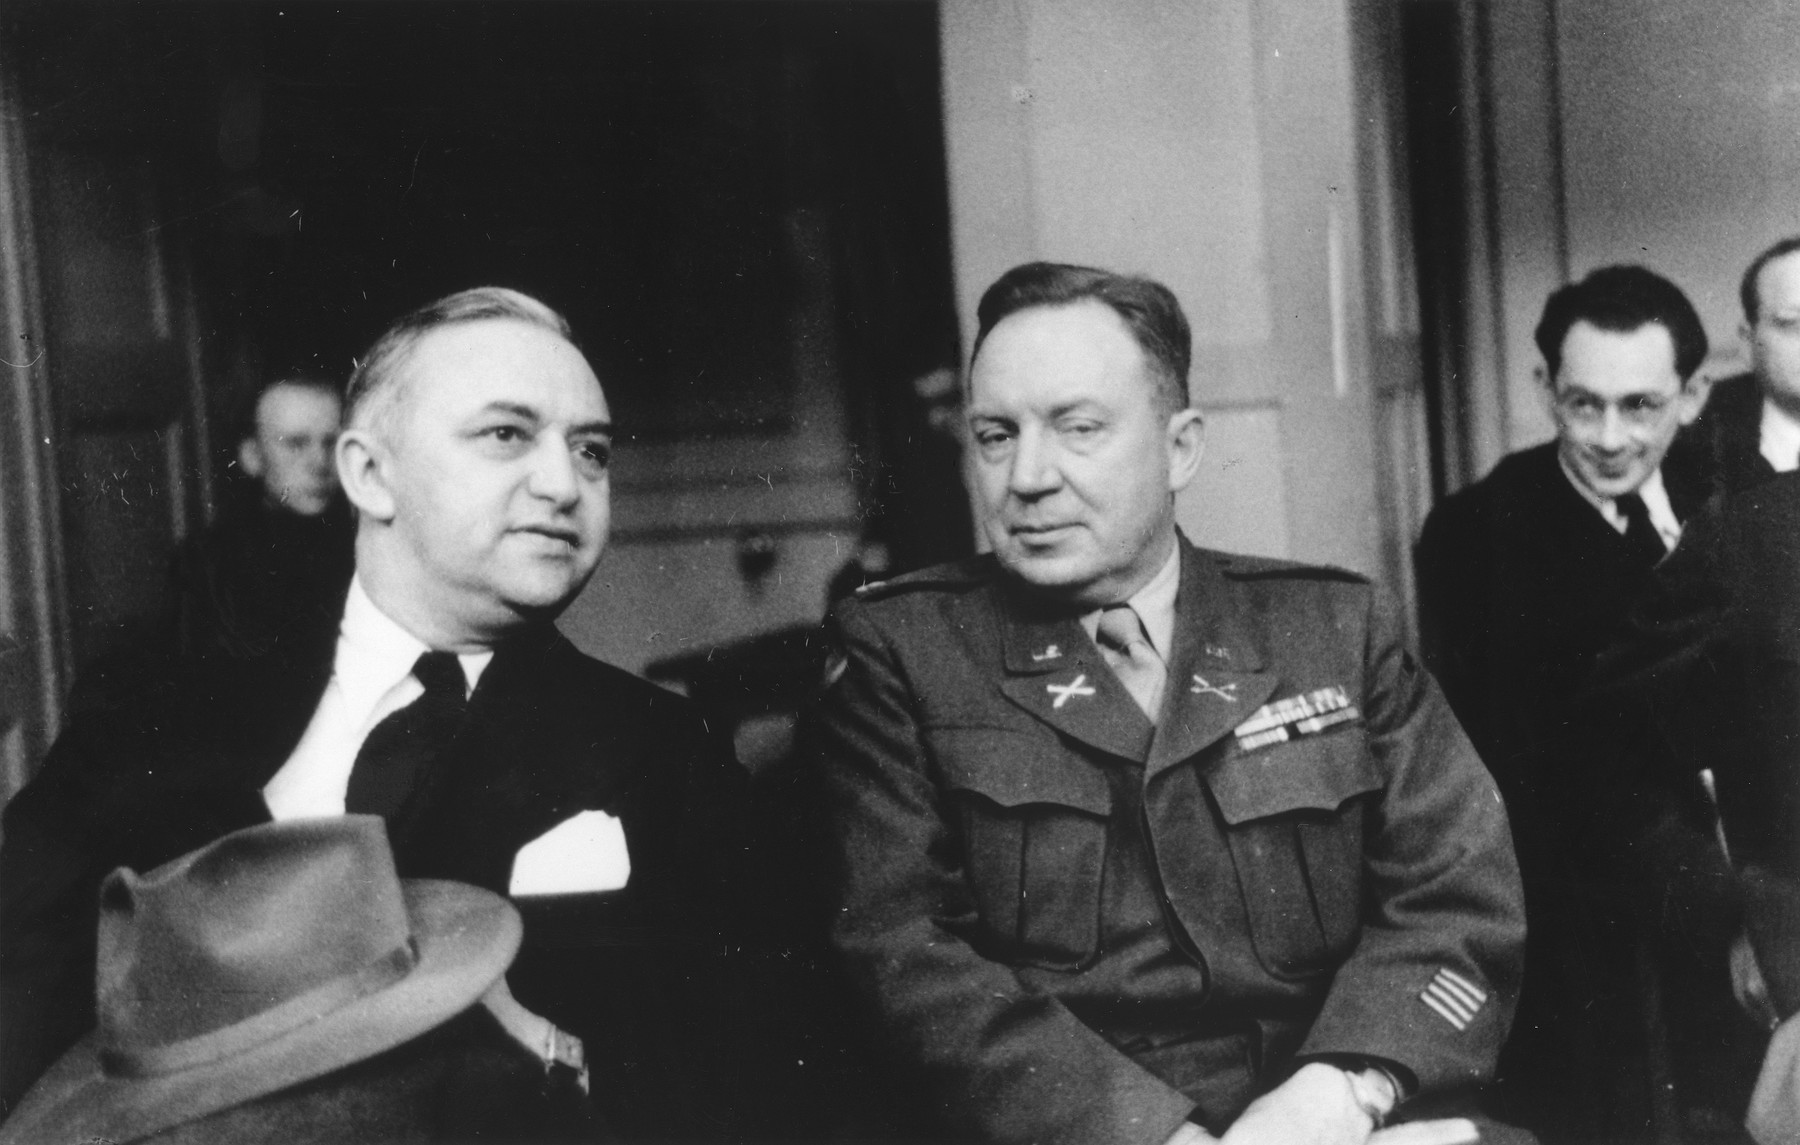 Rabbi Philip Bernstein, adviser on Jewish Affairs to the commander of the US forces in Europe, in conversation with an American military officer.